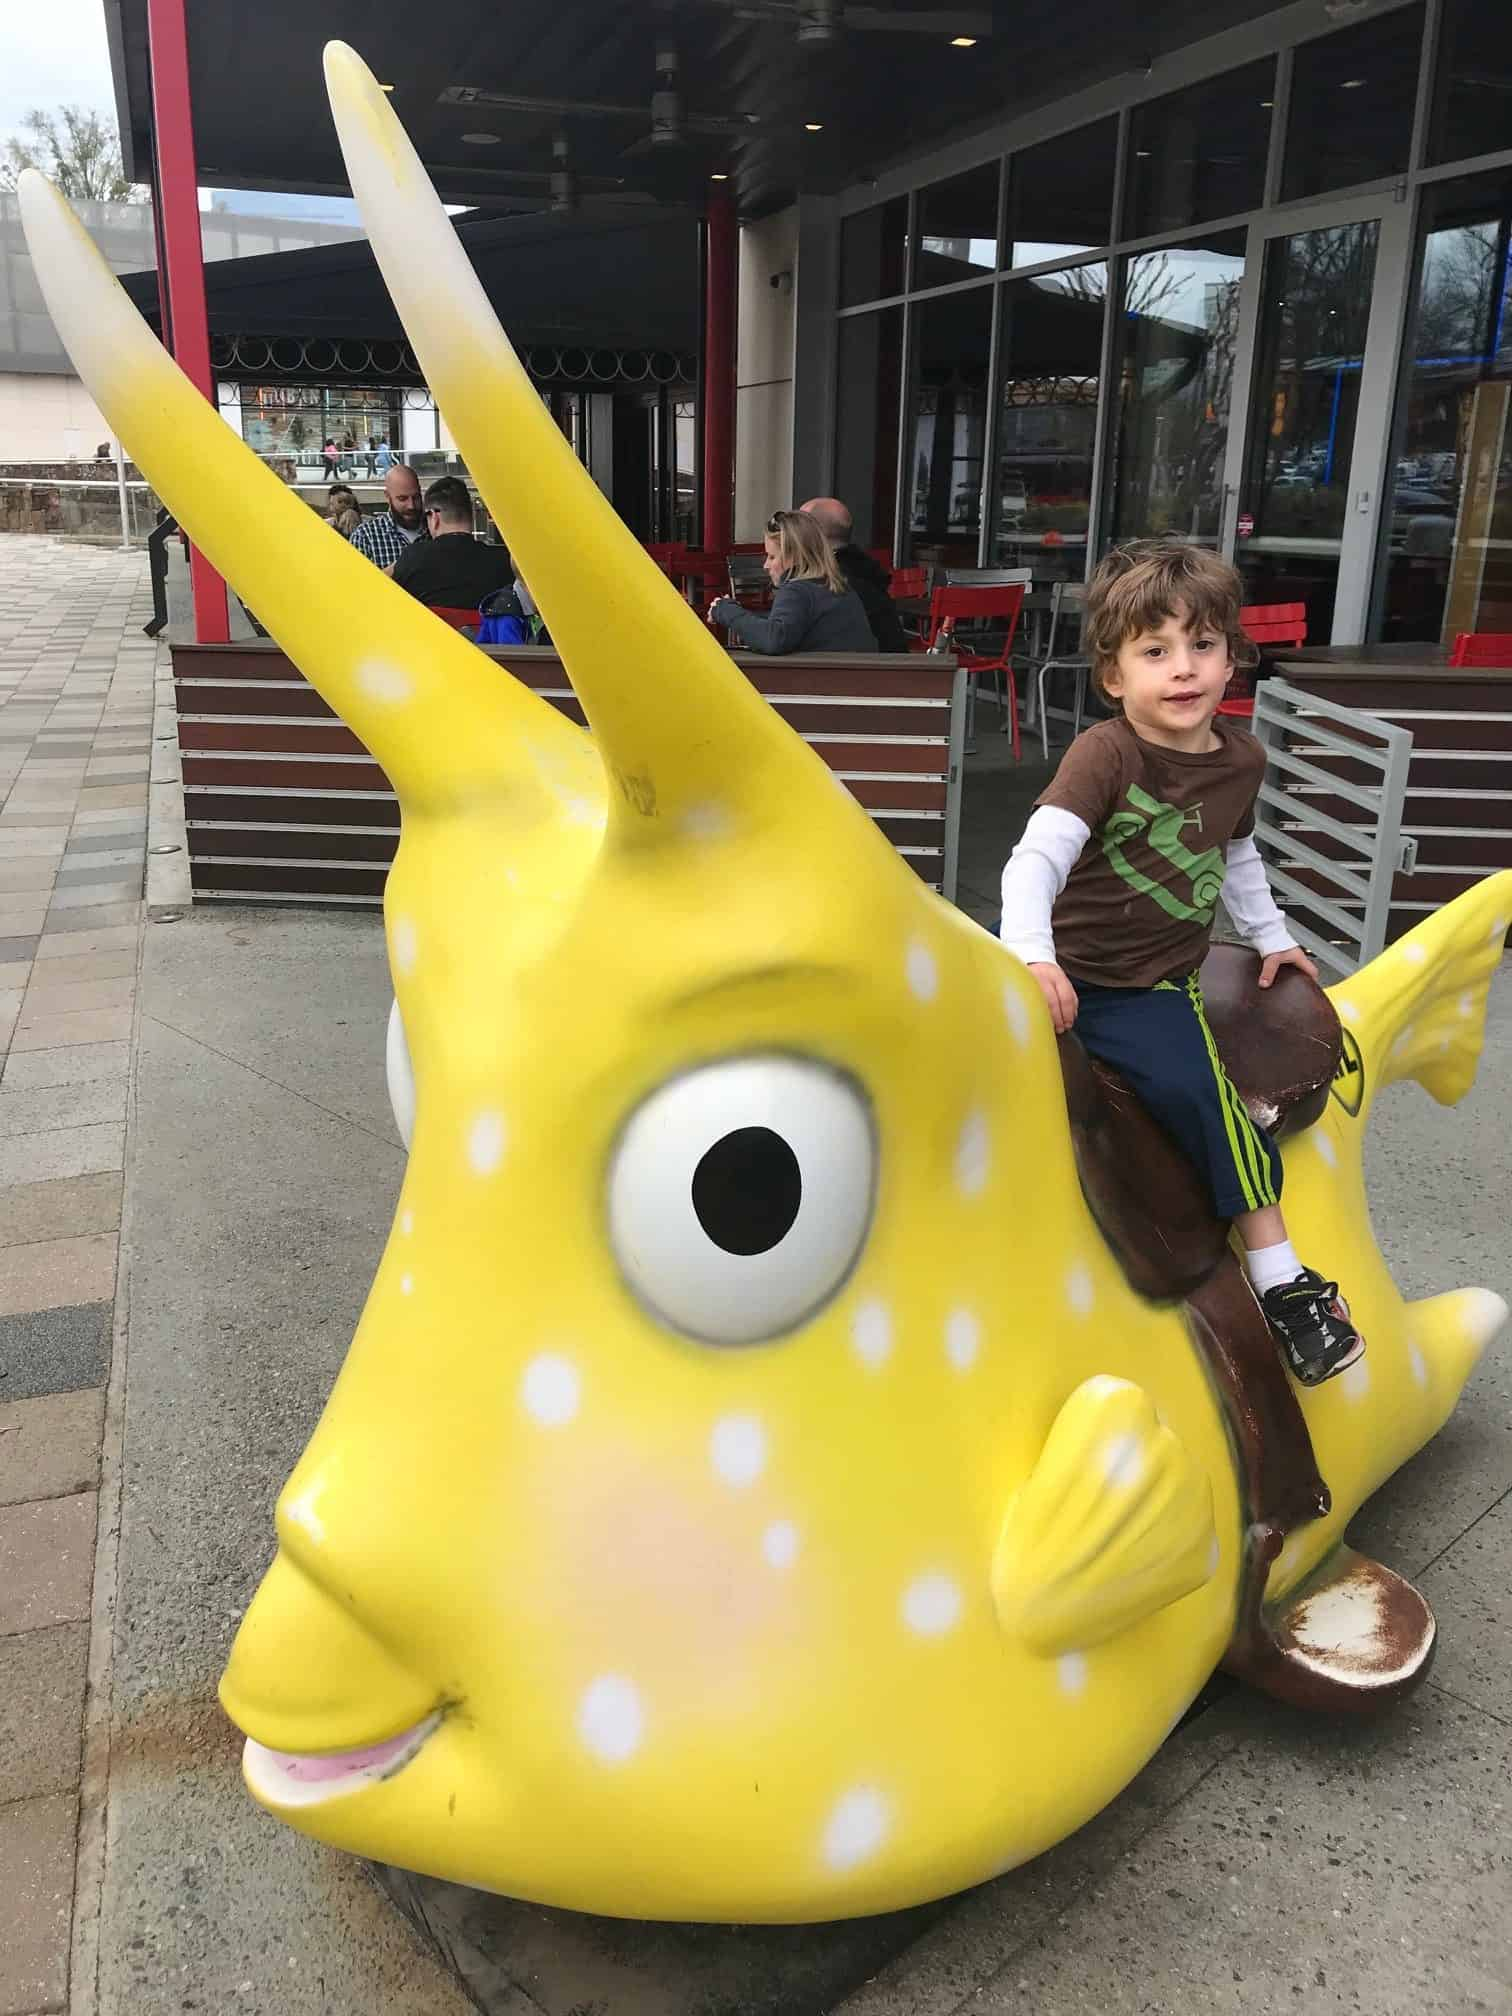 Atlanta Best Family-Friendly Restaurants: The Cowfish Sushi Burger Bar #AtlantaRestaurant #KidRestaurantAtlanta #AtlantaTravel #FamilyTravelAtlanta #FamilyTravel